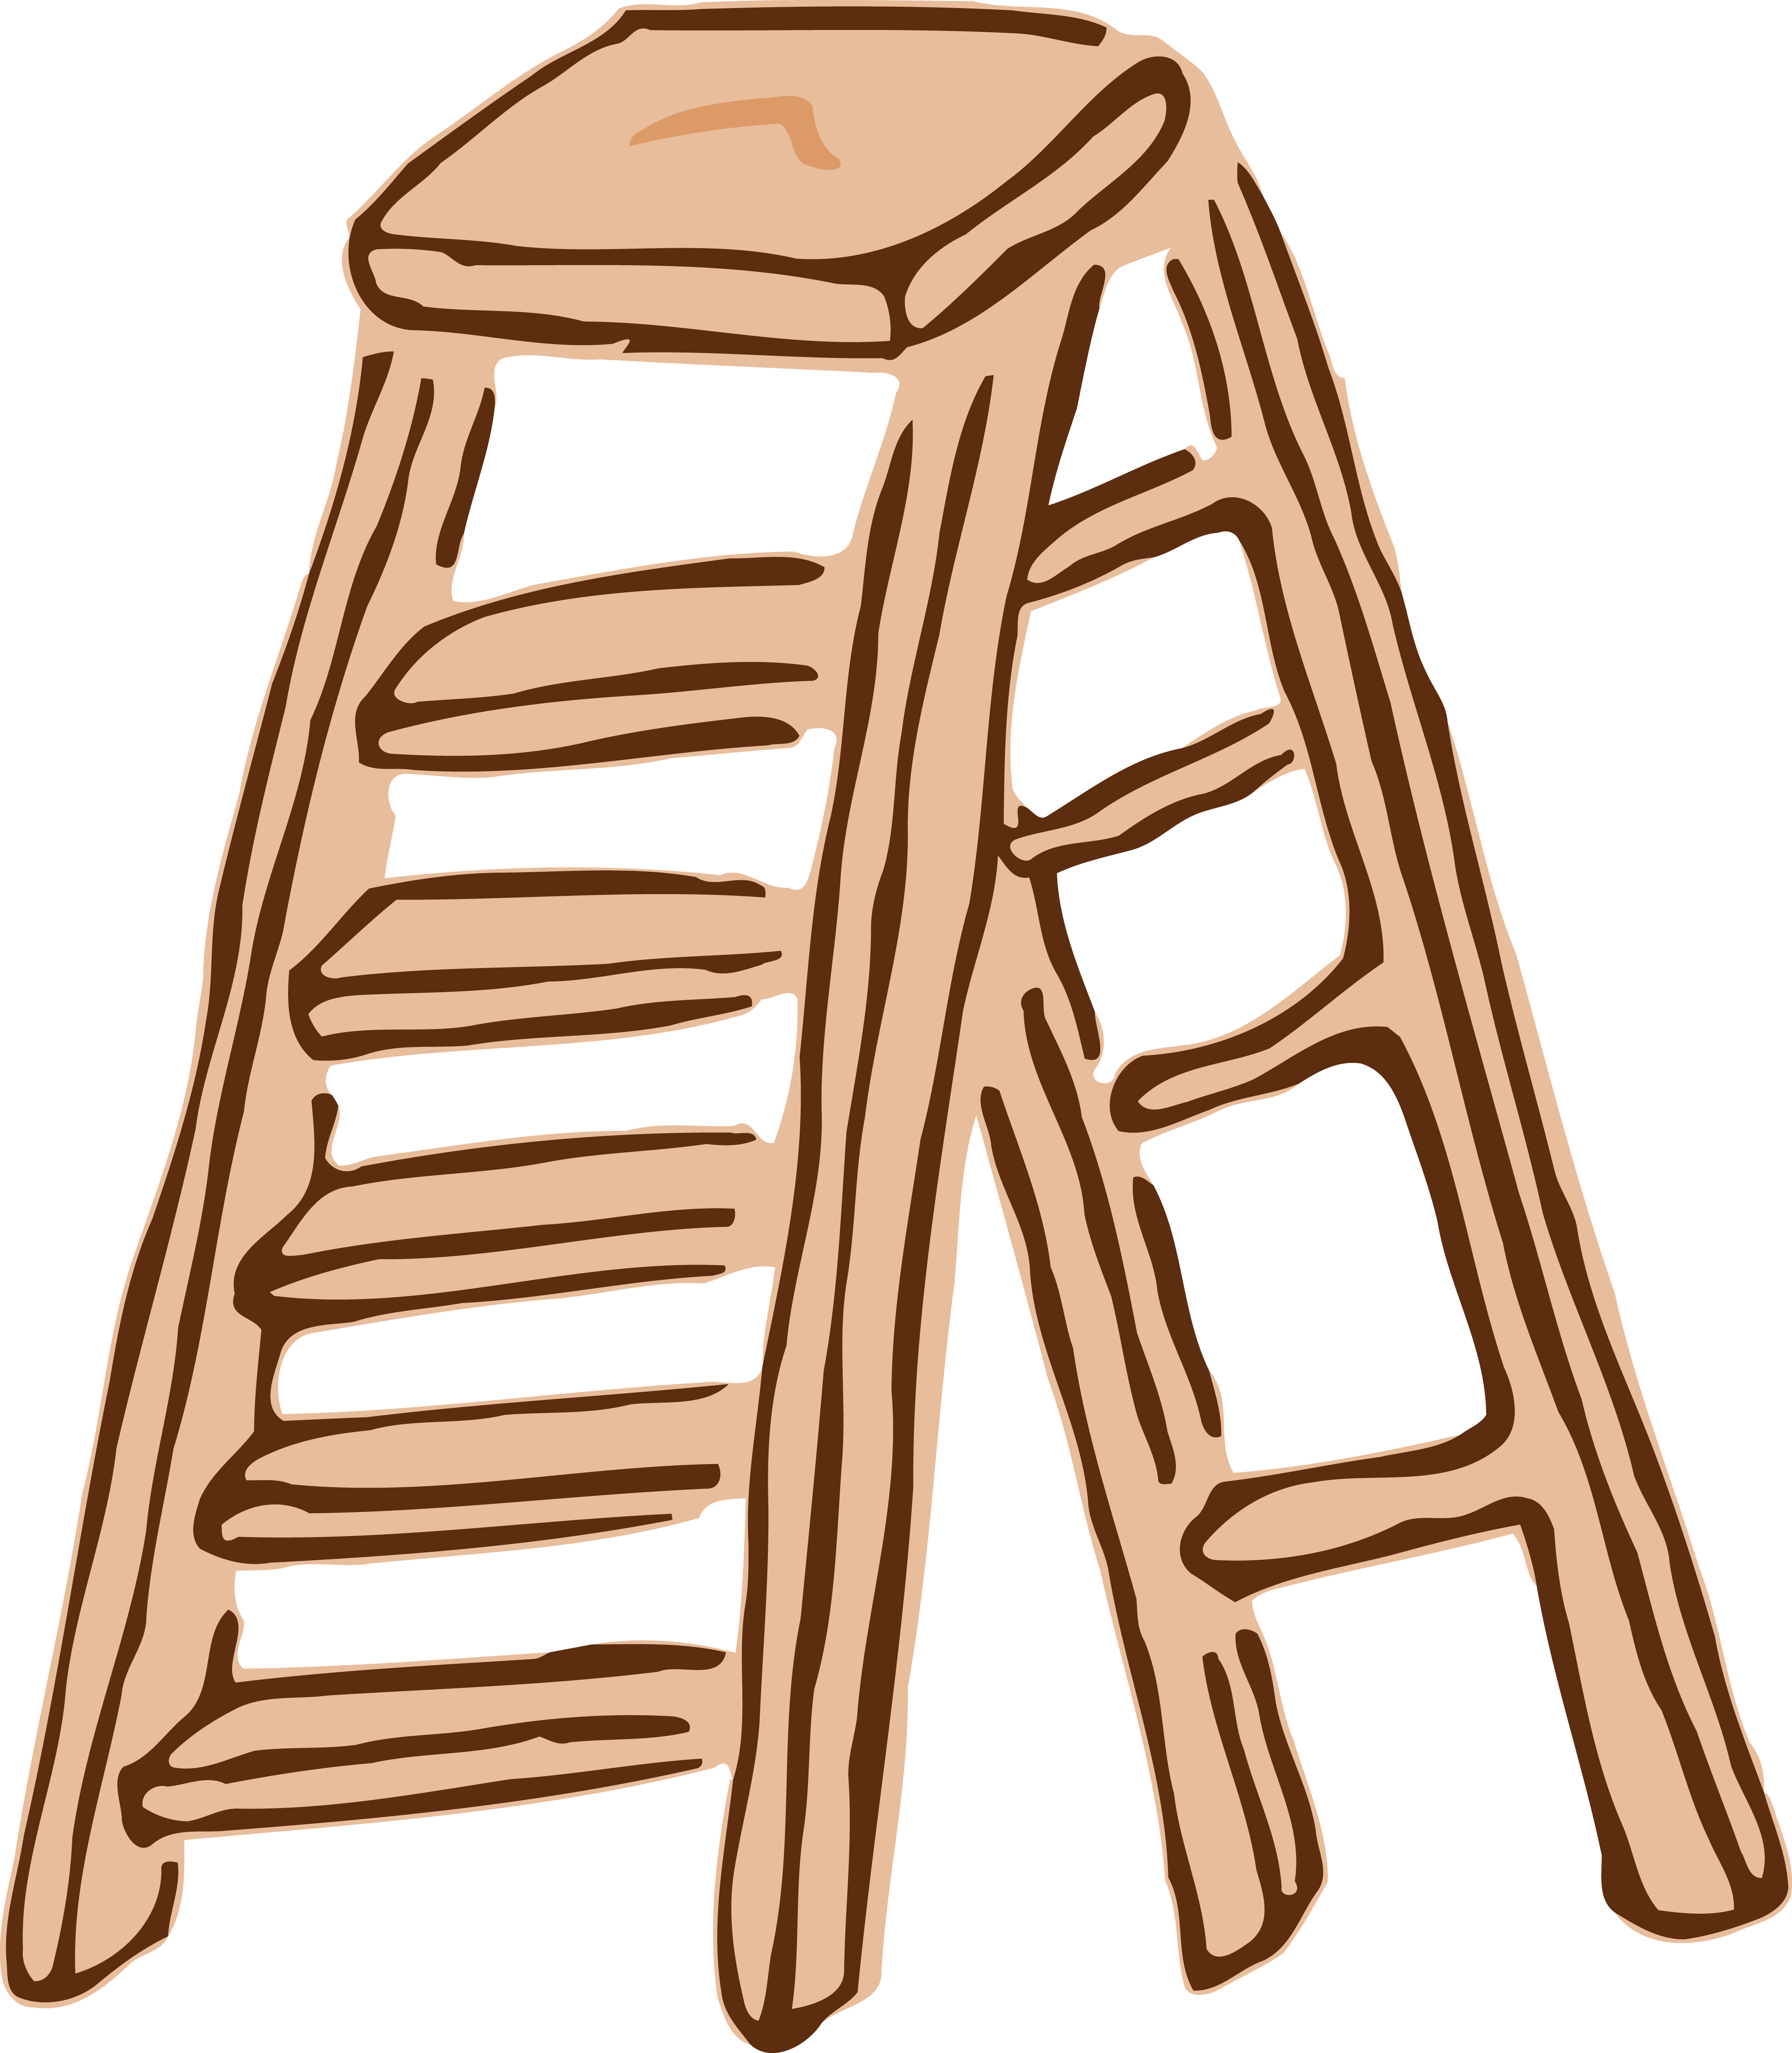 Clipart Of A Ladder.